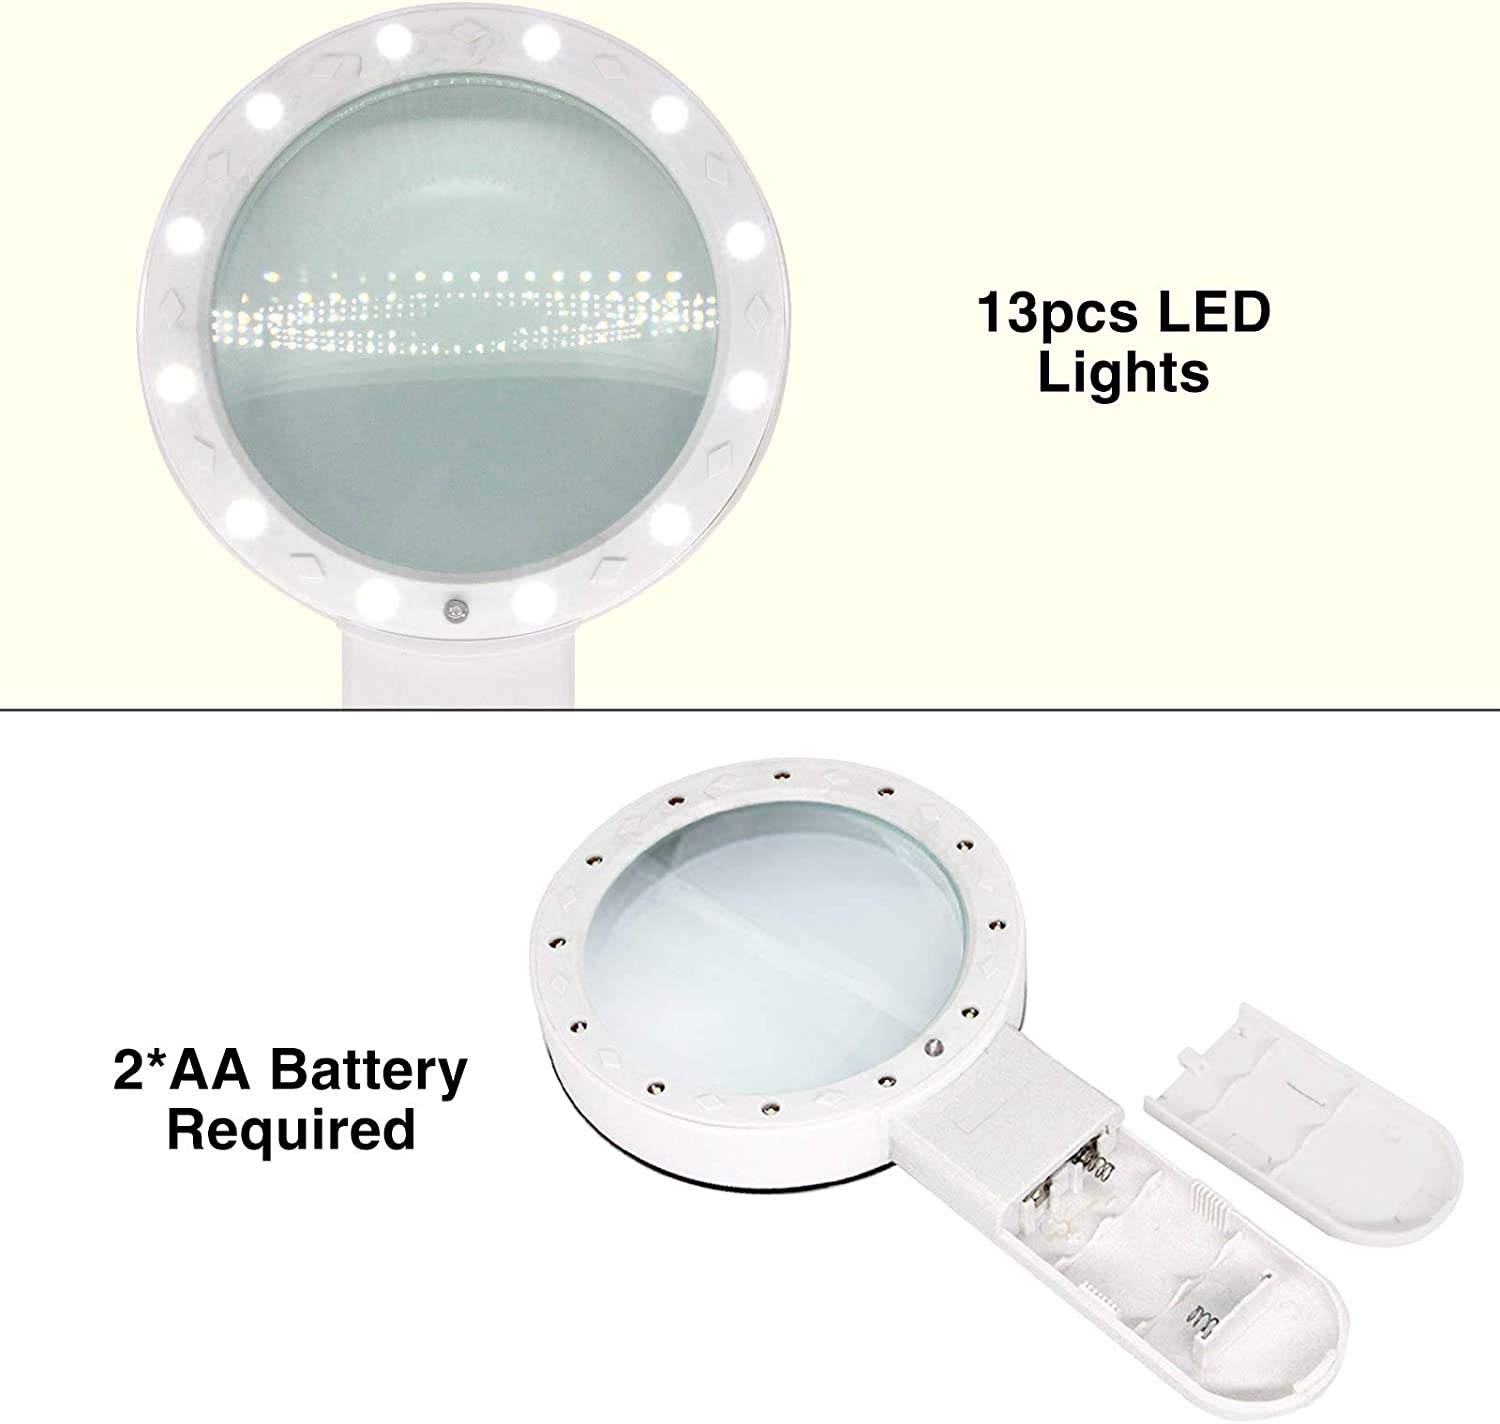 Magnifying/Glass/with/Light,/30X/Handheld/Large/Magnifying/Glass/13/LED/Illuminated/Lighted/Magnifier/for/RC/Installation,/Seniors/Reading,/Inspection,/Coin